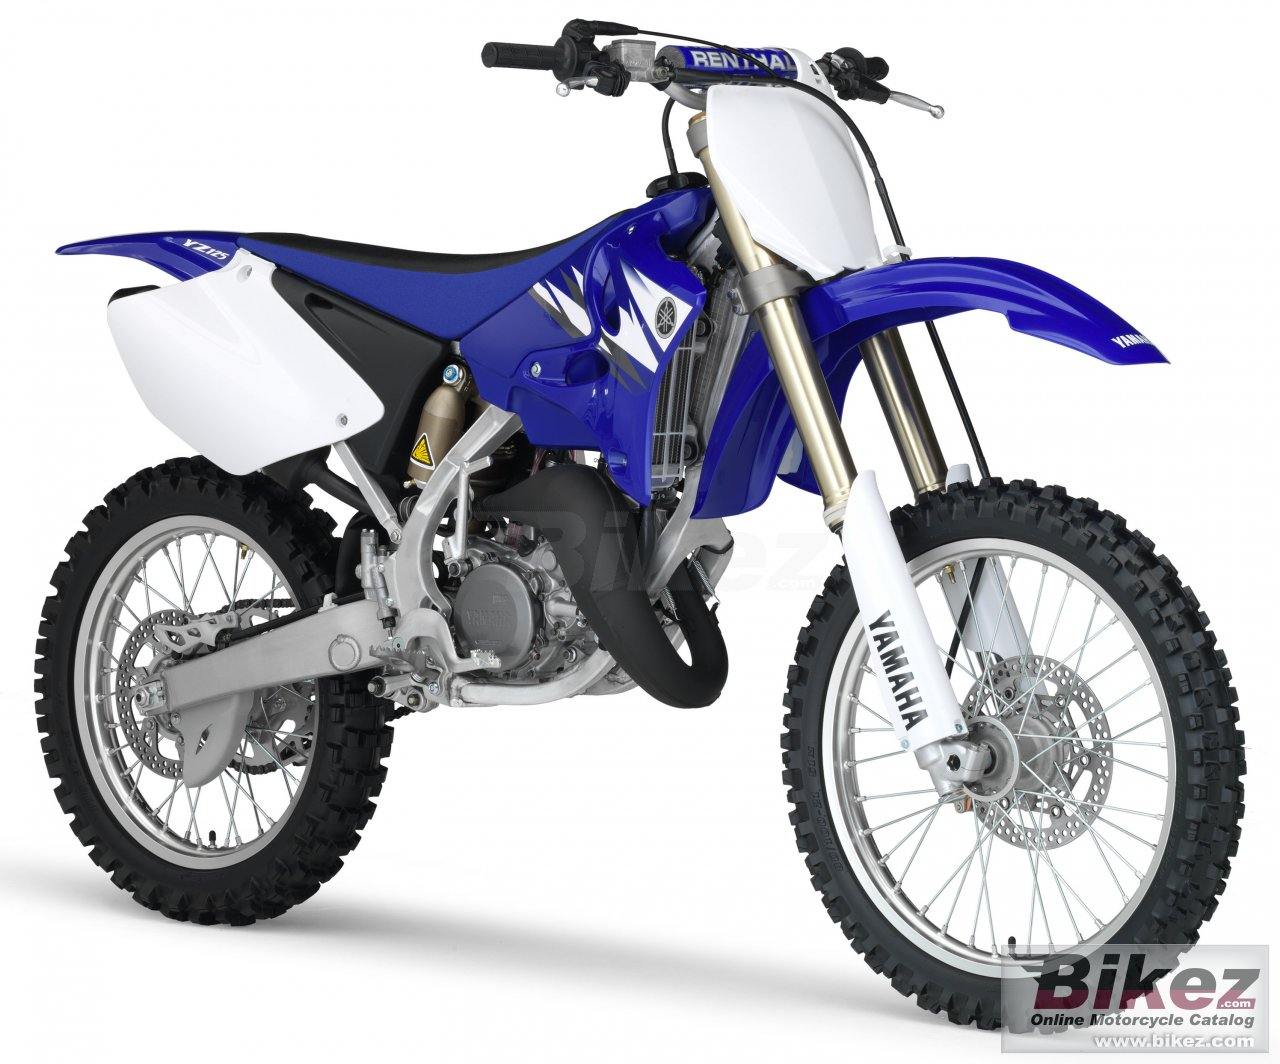 Big Yamaha yz 125 picture and wallpaper from Bikez.com